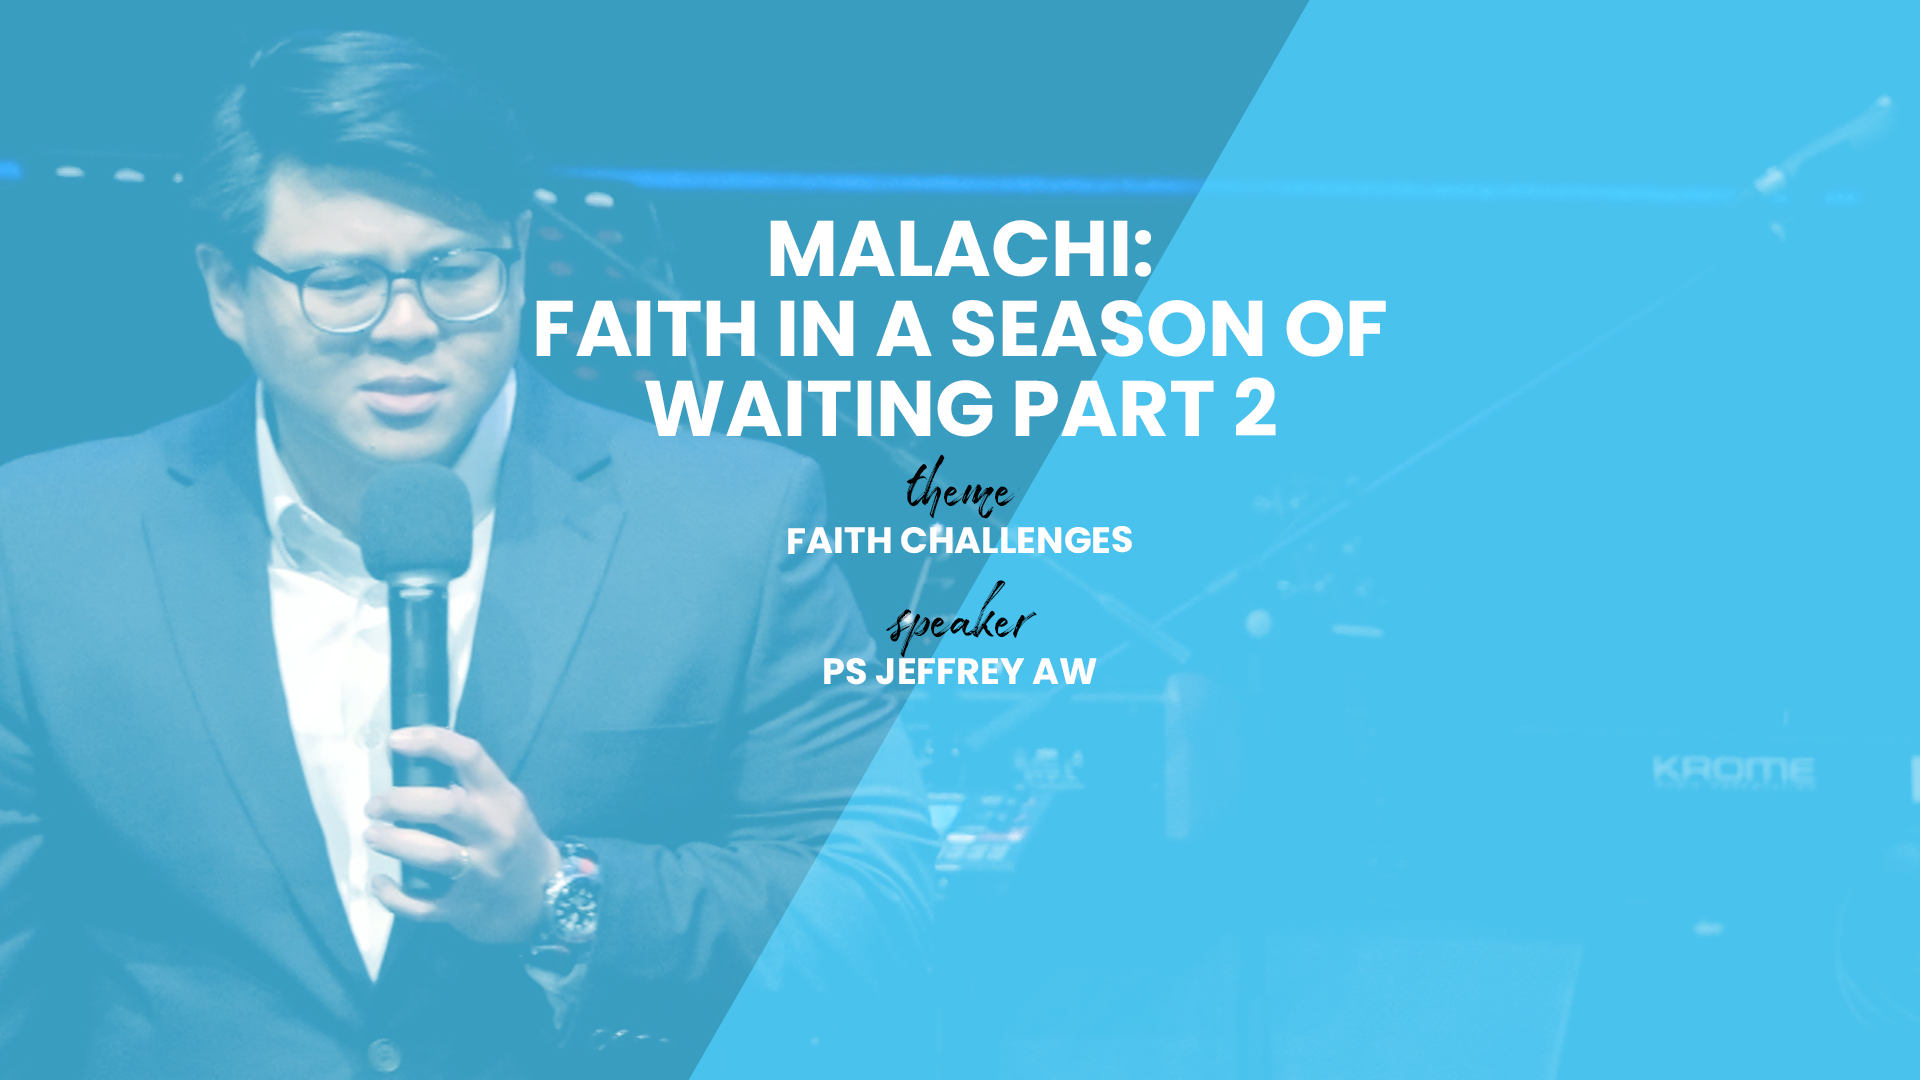 Malachi: Faith in a Season of Waiting (Part 2)